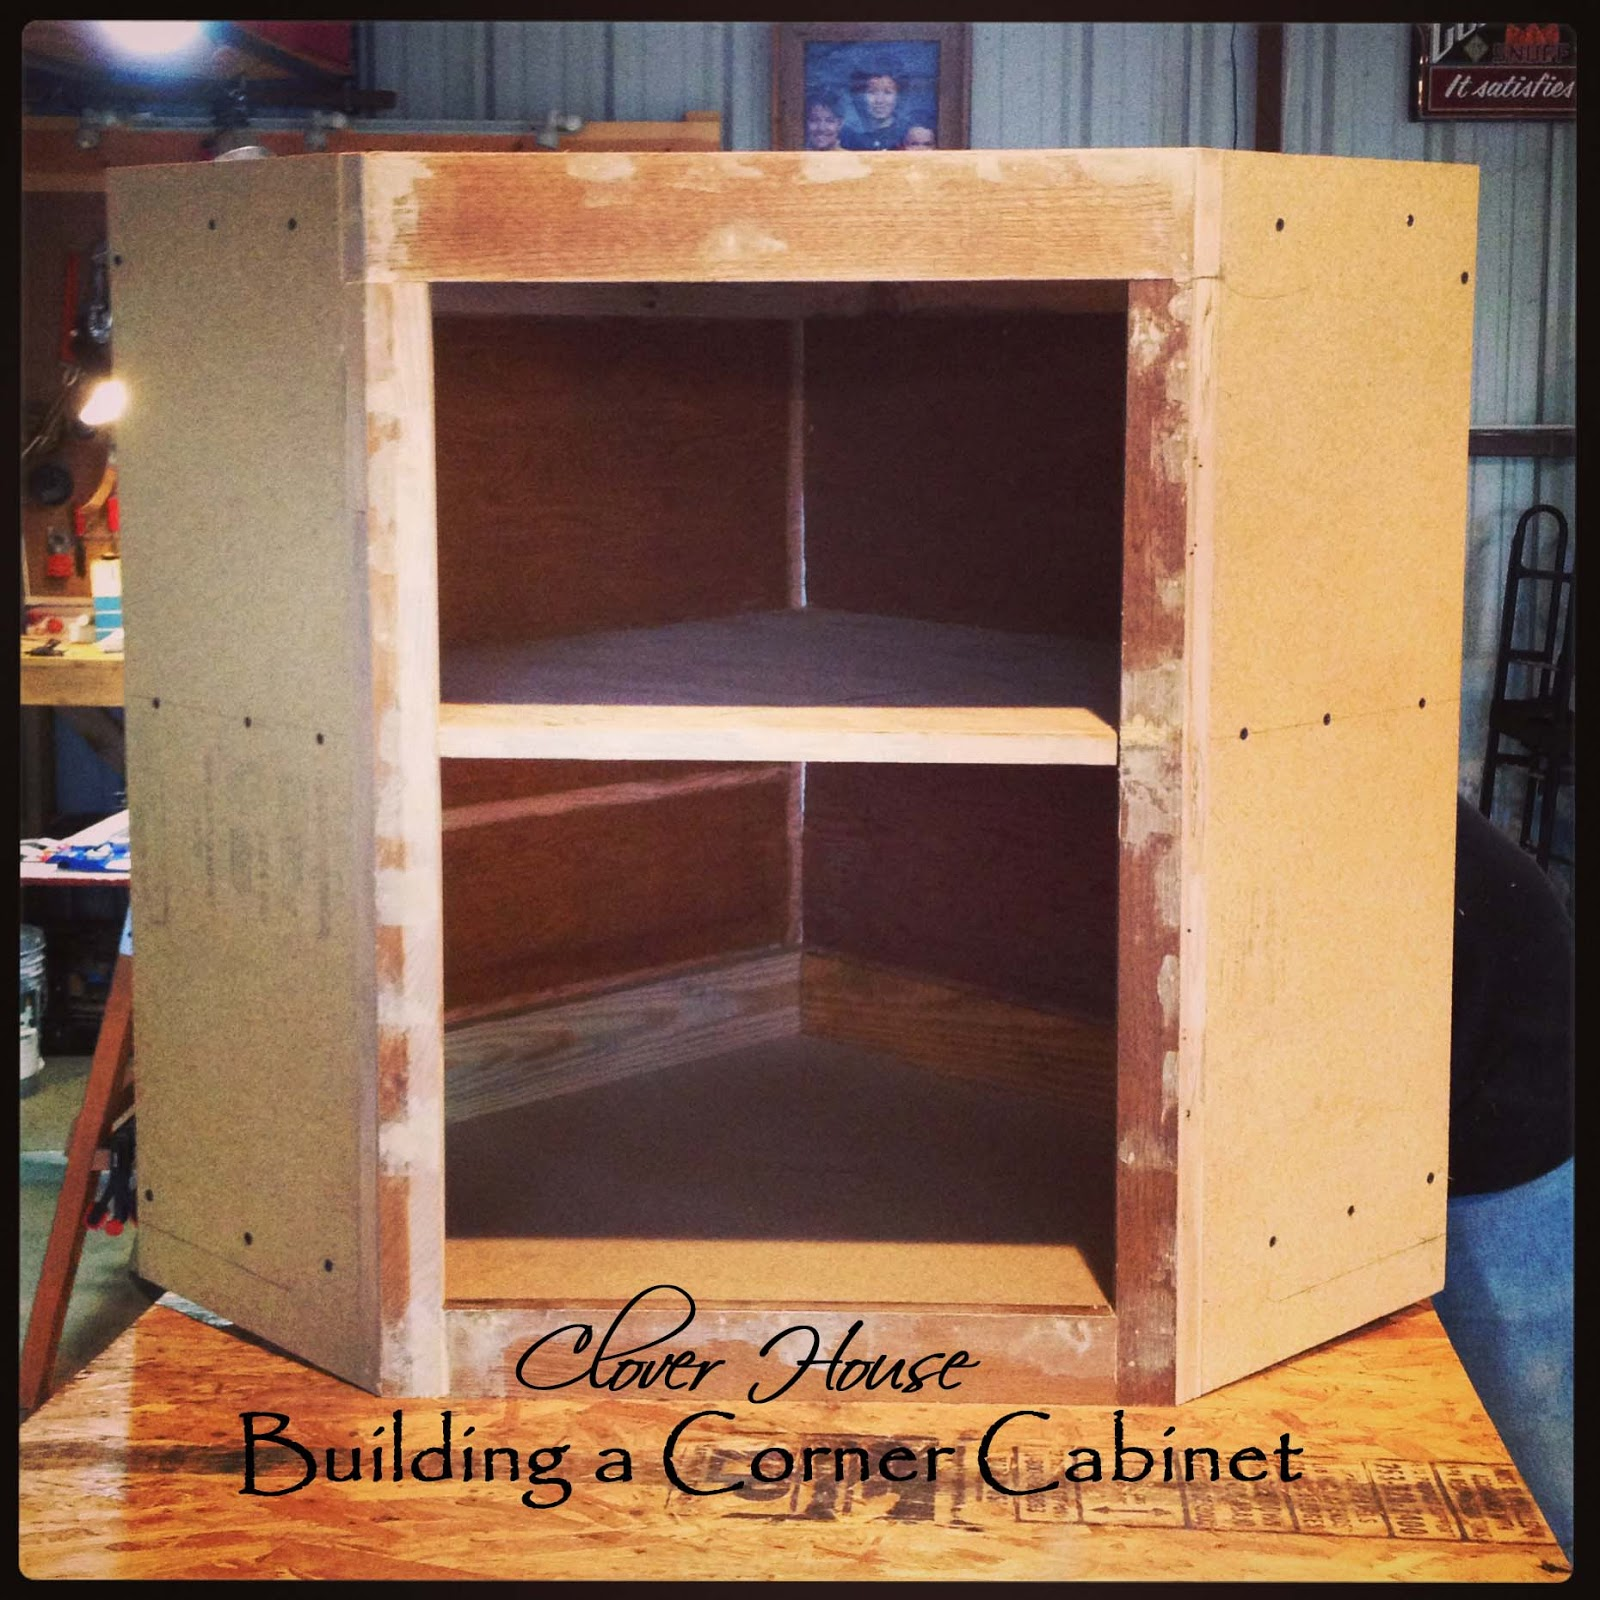 How To Make A Kitchen Cabinet: Clover House: Building A Corner Cabinet